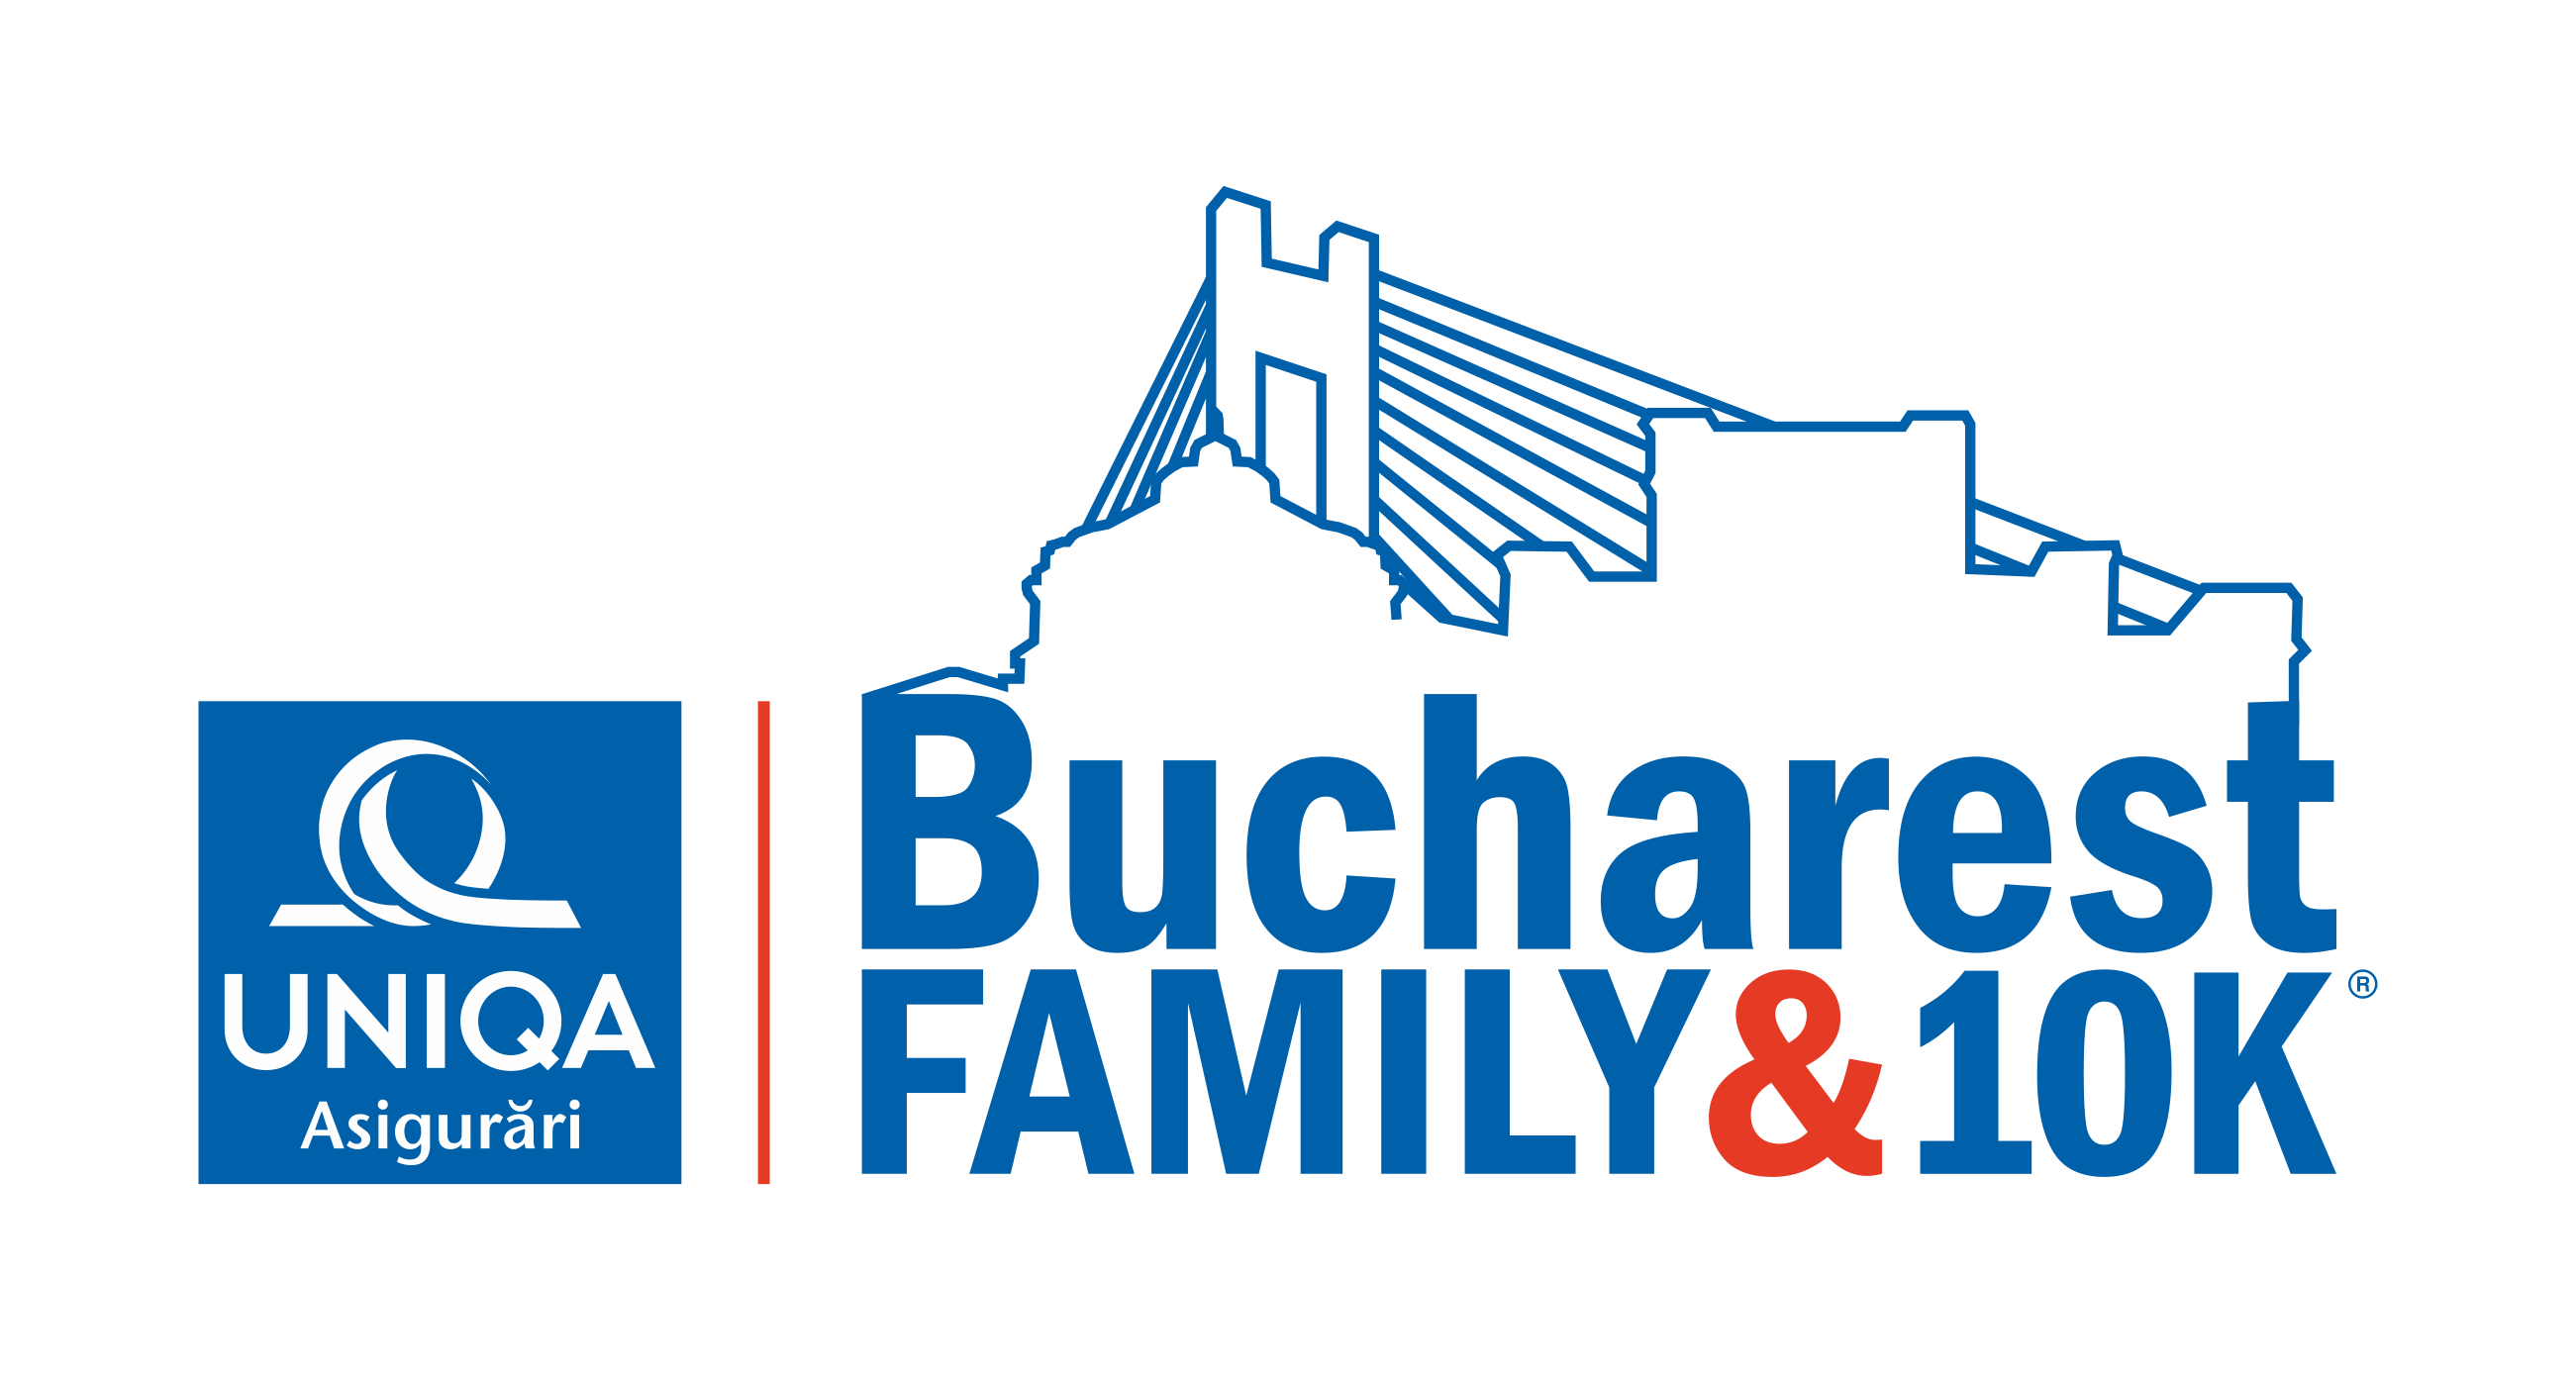 UNIQA Asigurări Bucharest Family & 10K | #RunInBucharest